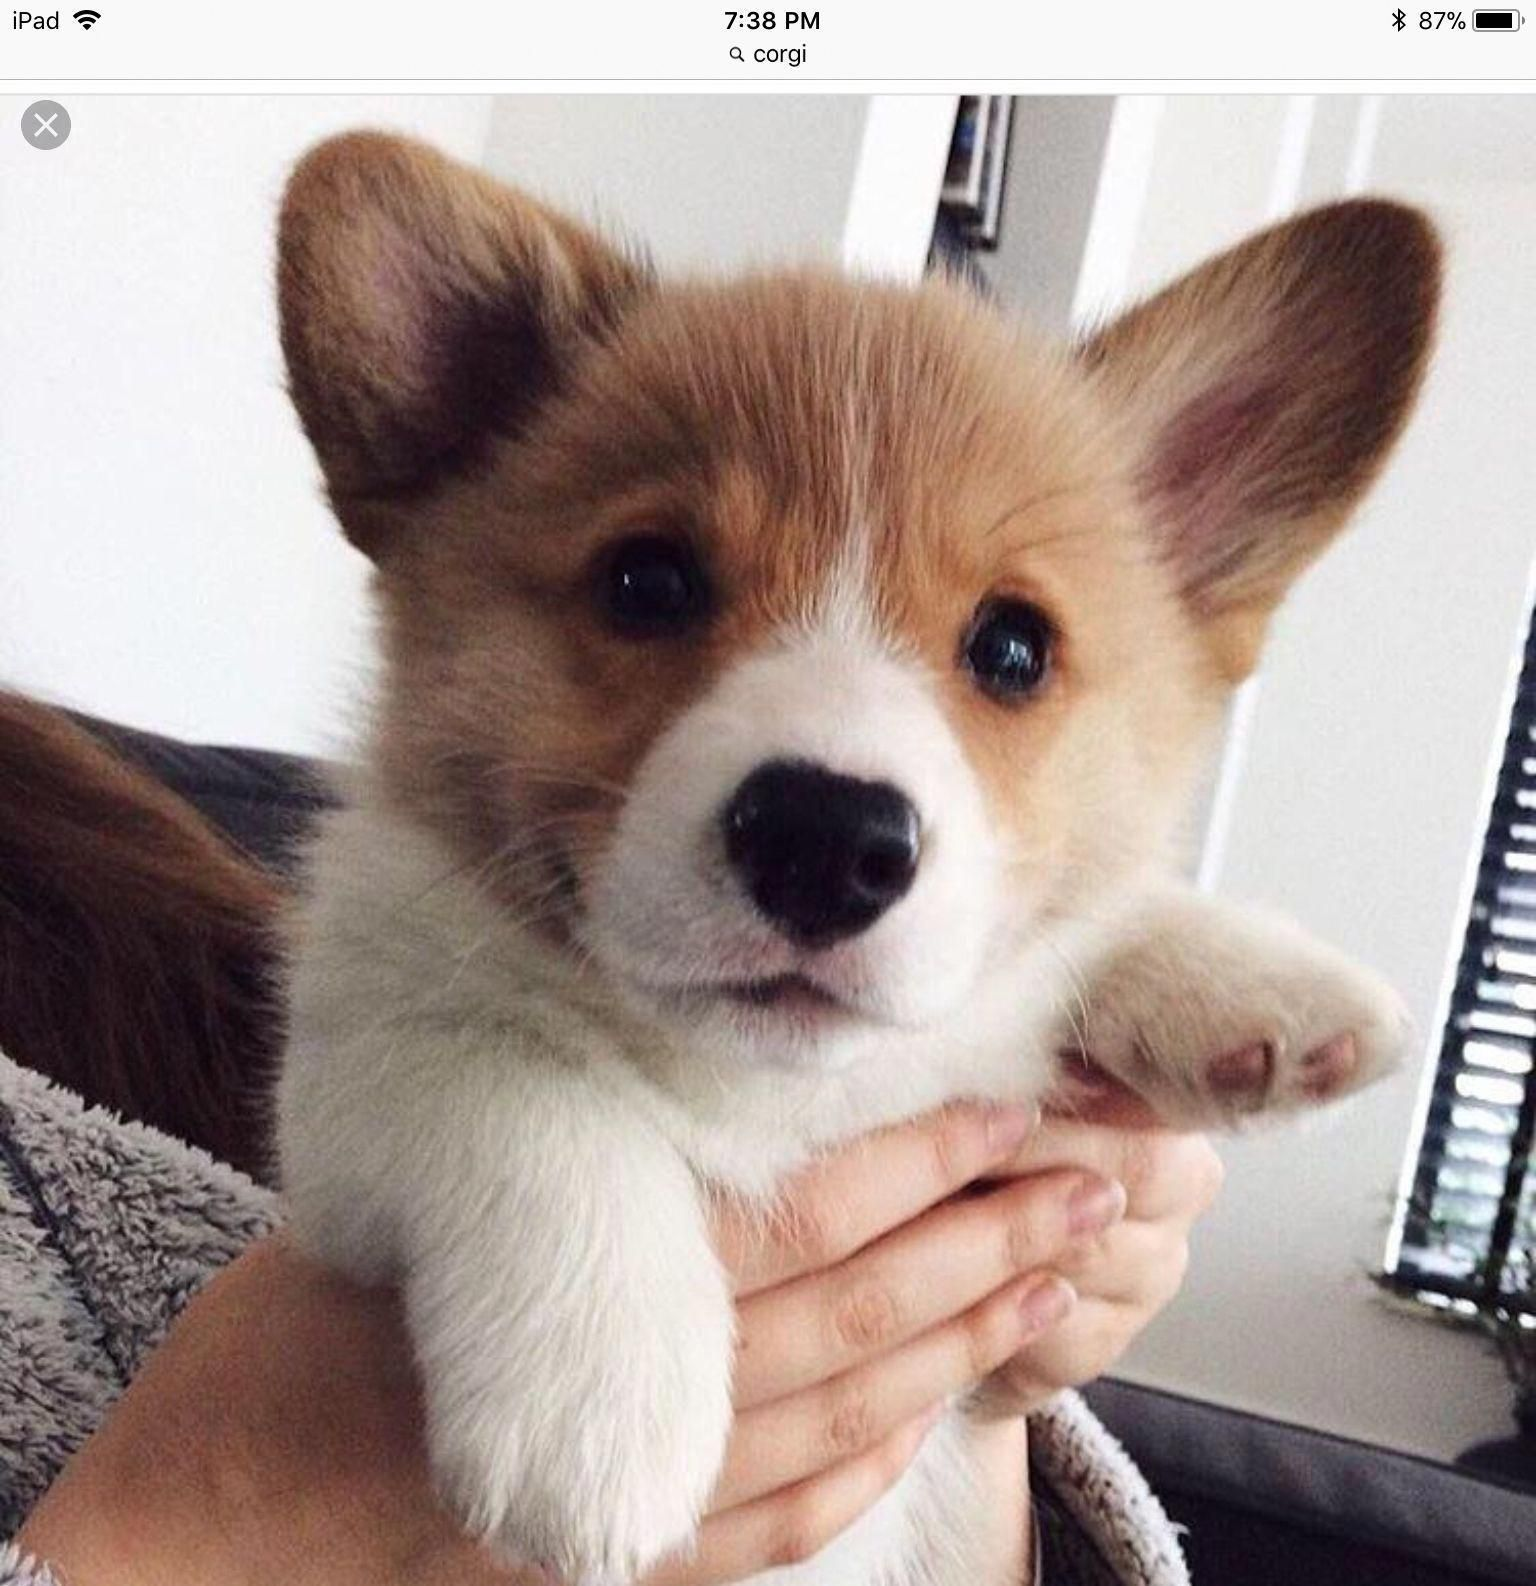 Cute Dog Pictures By Rita Hopkins On Corgi S Wonderful Dog S In